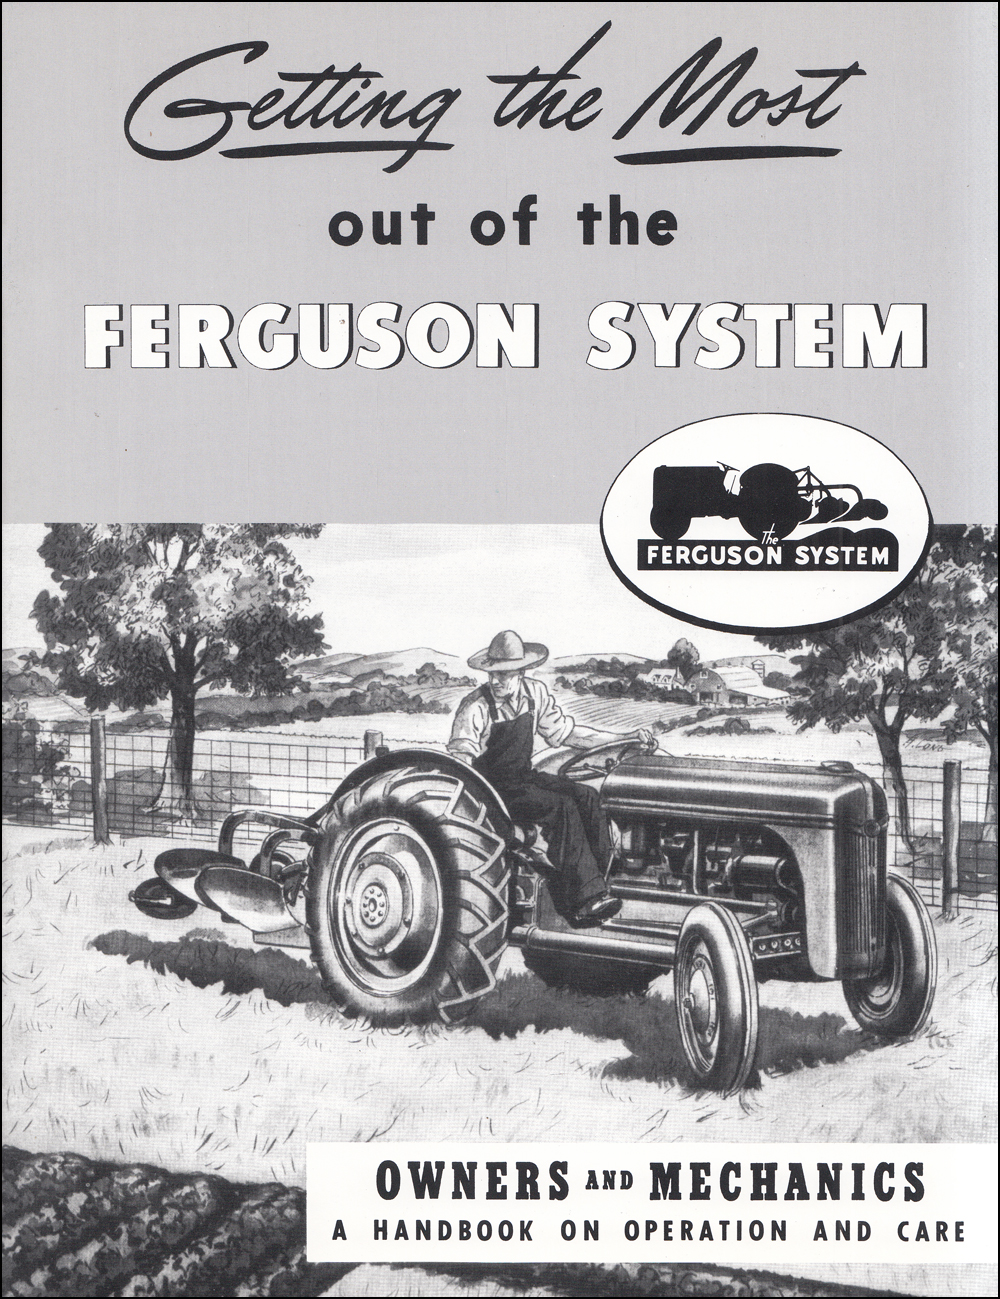 Ford 2N 8N 9N Ferguson System Reprint Owner's Manual